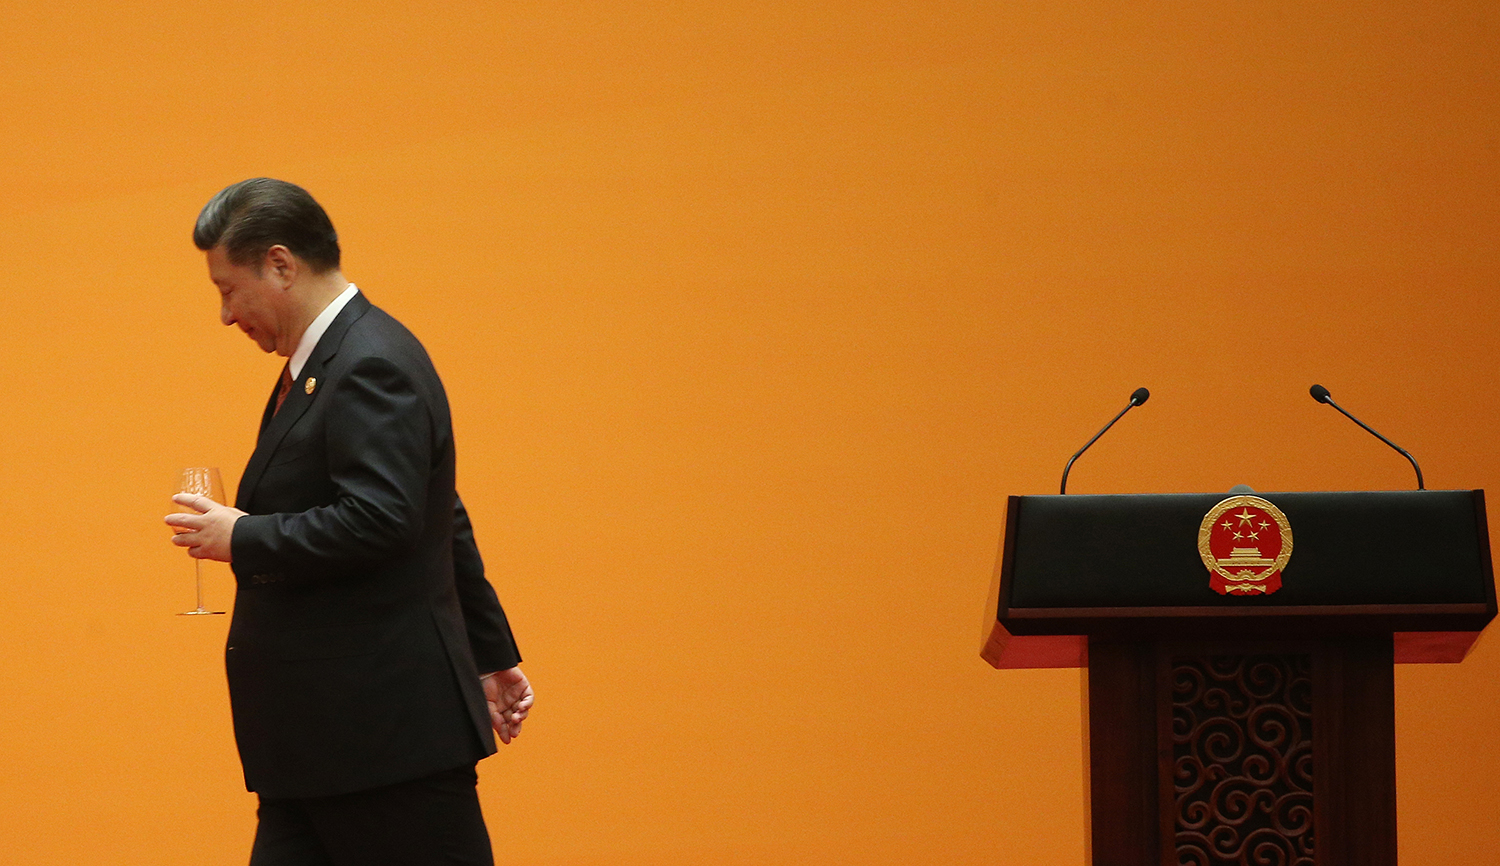 Chinese President Xi Jinping leaves after making a toast during a welcome banquet .